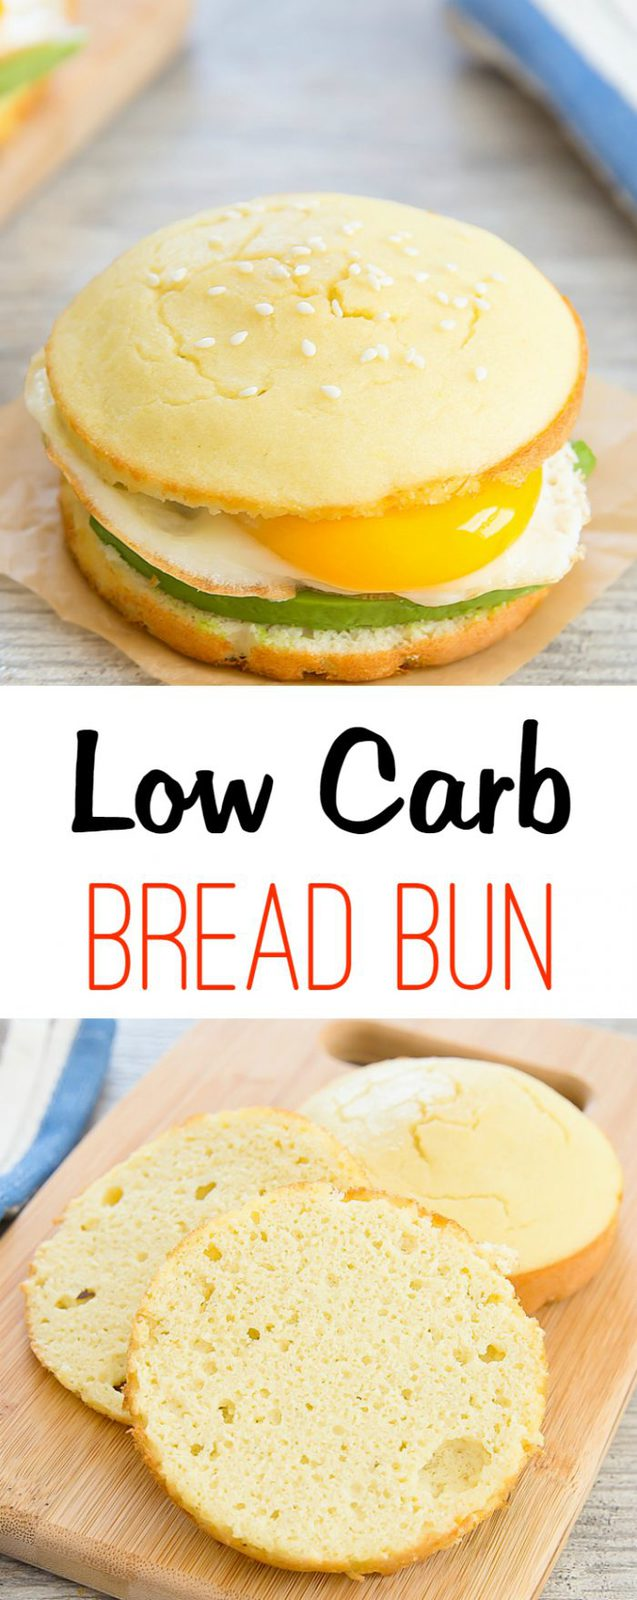 Low Carb and Gluten Free Bread Bun